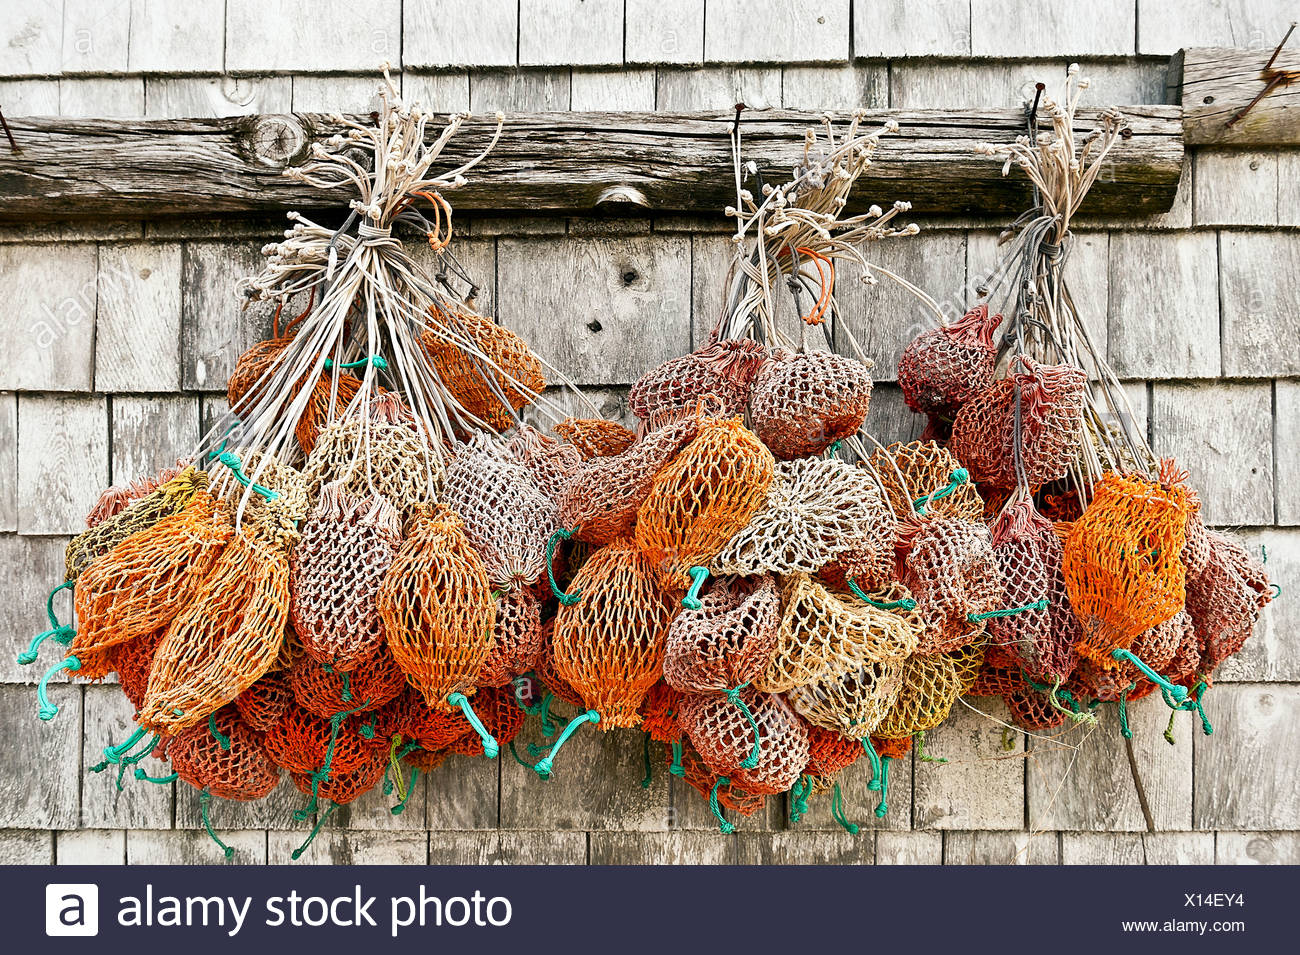 Bait bags hang from a dockside shed, Bass Harbor, Maine, USA - Stock Image